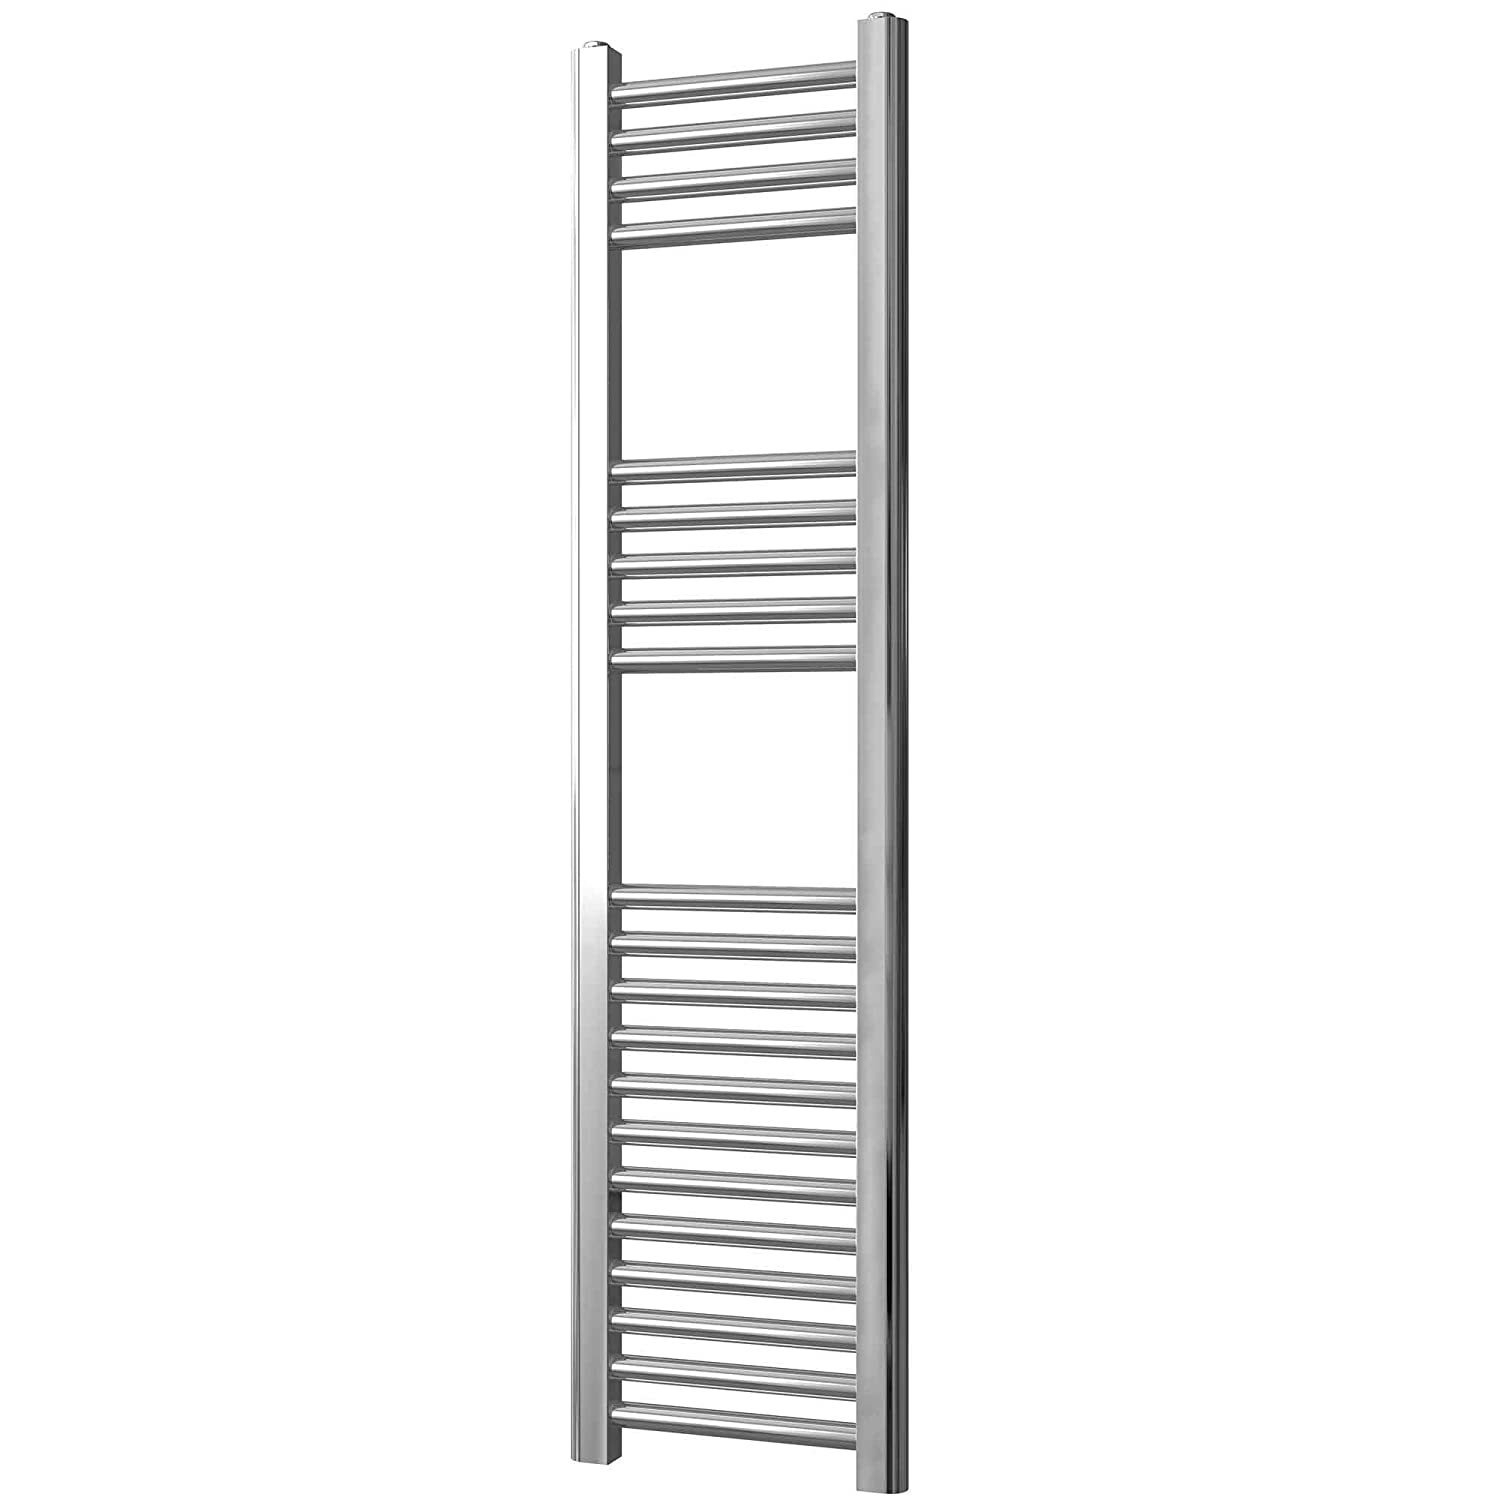 Greened House Chrome Straight Heated Towel Rail 300mm wide x 1200mm high Flat Central Heating Towel Radiator